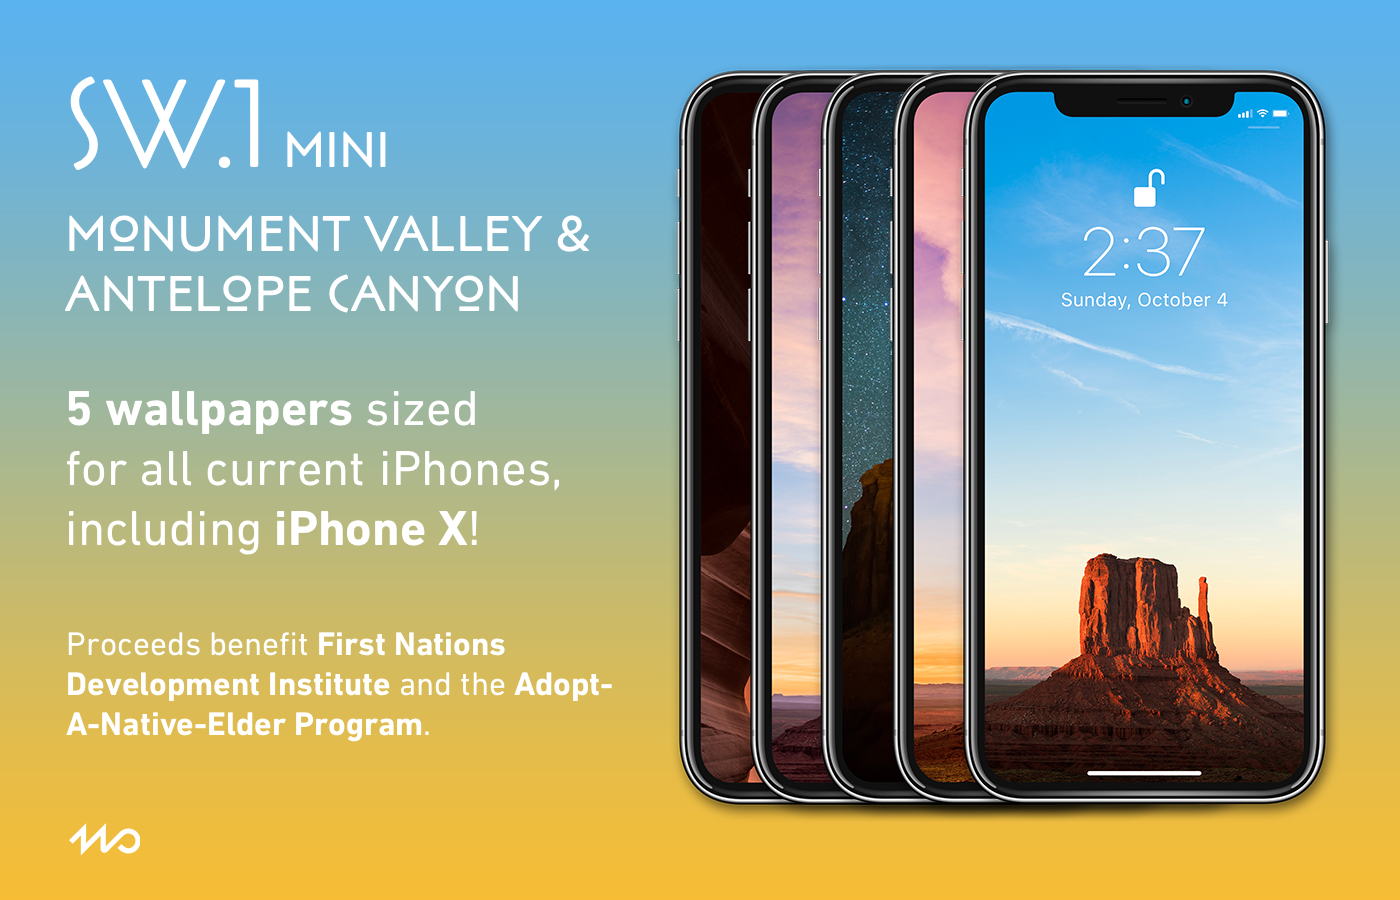 SW.1 mini - SW.1 mini includes iPhone wallpapers made from photos taken in Monument Valley and Antelope Canyon, both of which are part of the Navajo Nation.All proceeds from the sale of SW.1 mini benefit equally the First Nations Development Institute and the Adopt-A-Native-Elder Program.